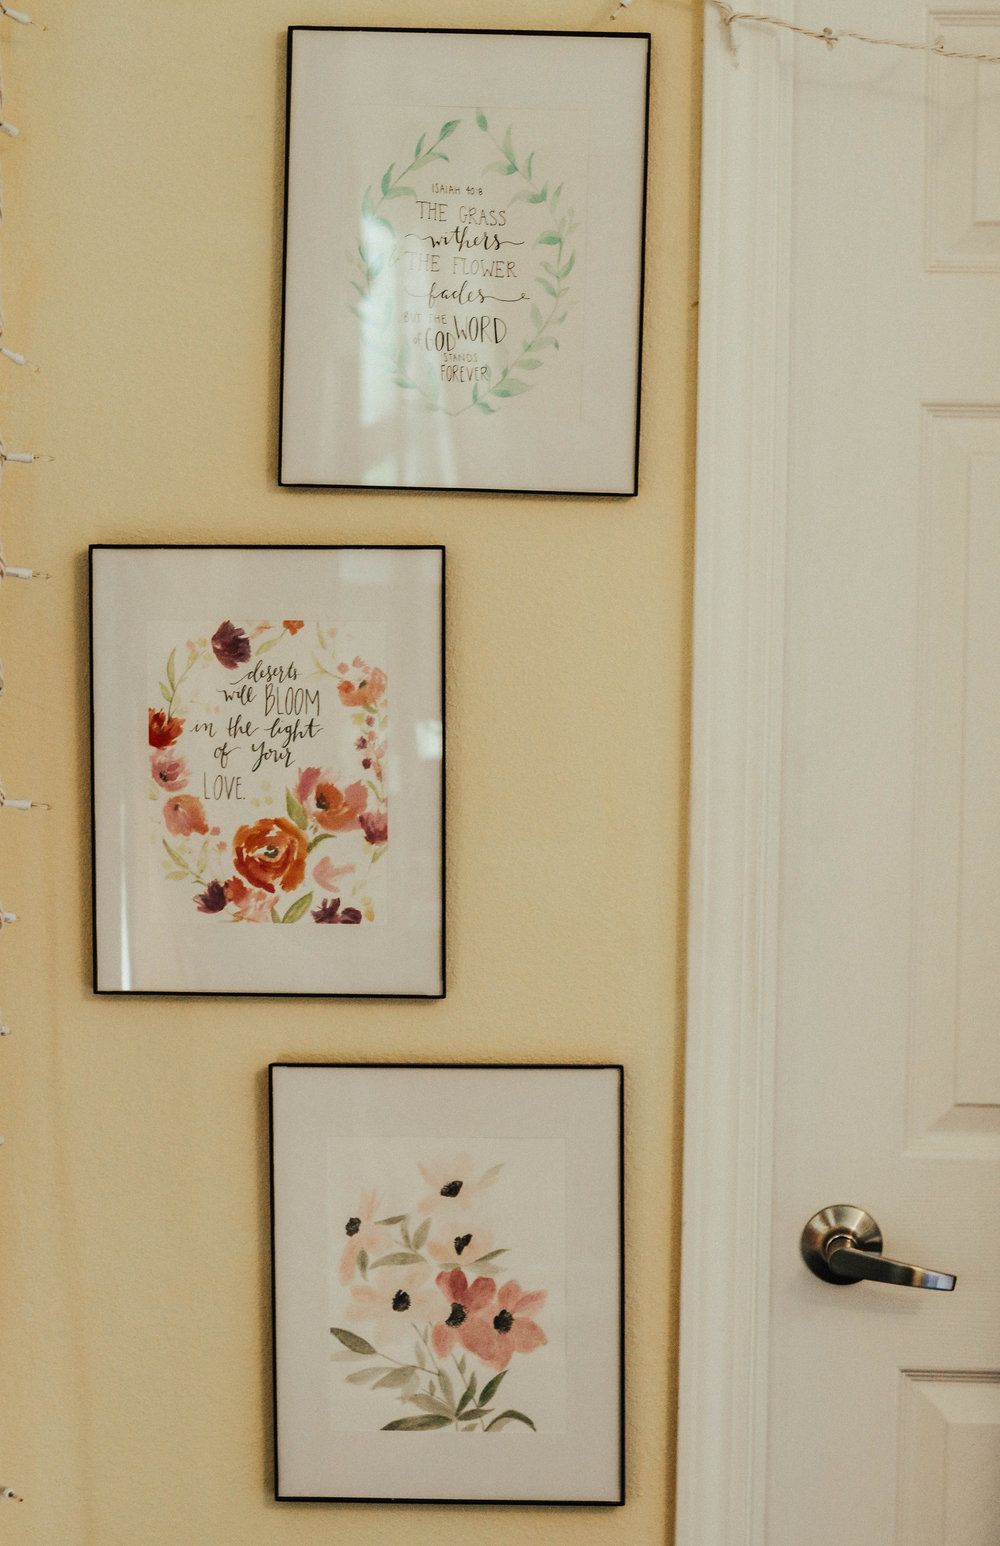 Amazing Writing On Wall Decor Photos - The Wall Art Decorations ...